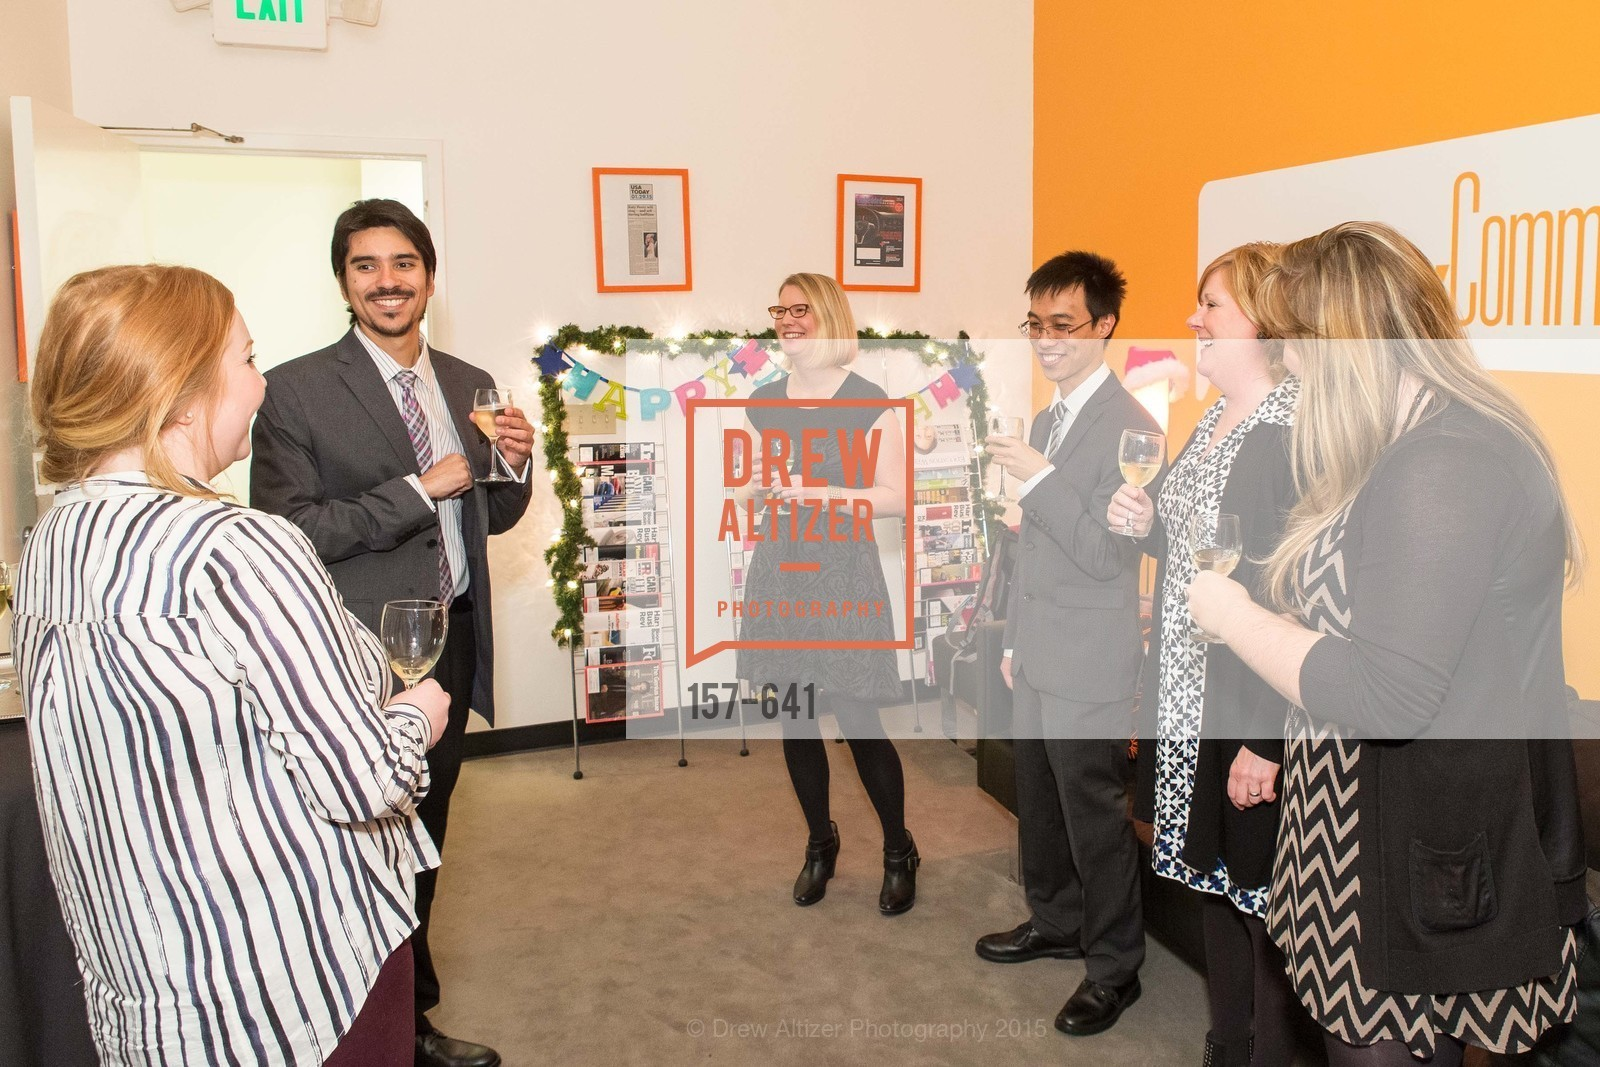 Estevan Aguayo, Meredith McNeill, Stanley Seato, Barb Hagin, Savonix Launch Celebration and Toys for Tots Benefit, Savonix. 300 Broadway, Suite 14, December 10th, 2015,Drew Altizer, Drew Altizer Photography, full-service agency, private events, San Francisco photographer, photographer california